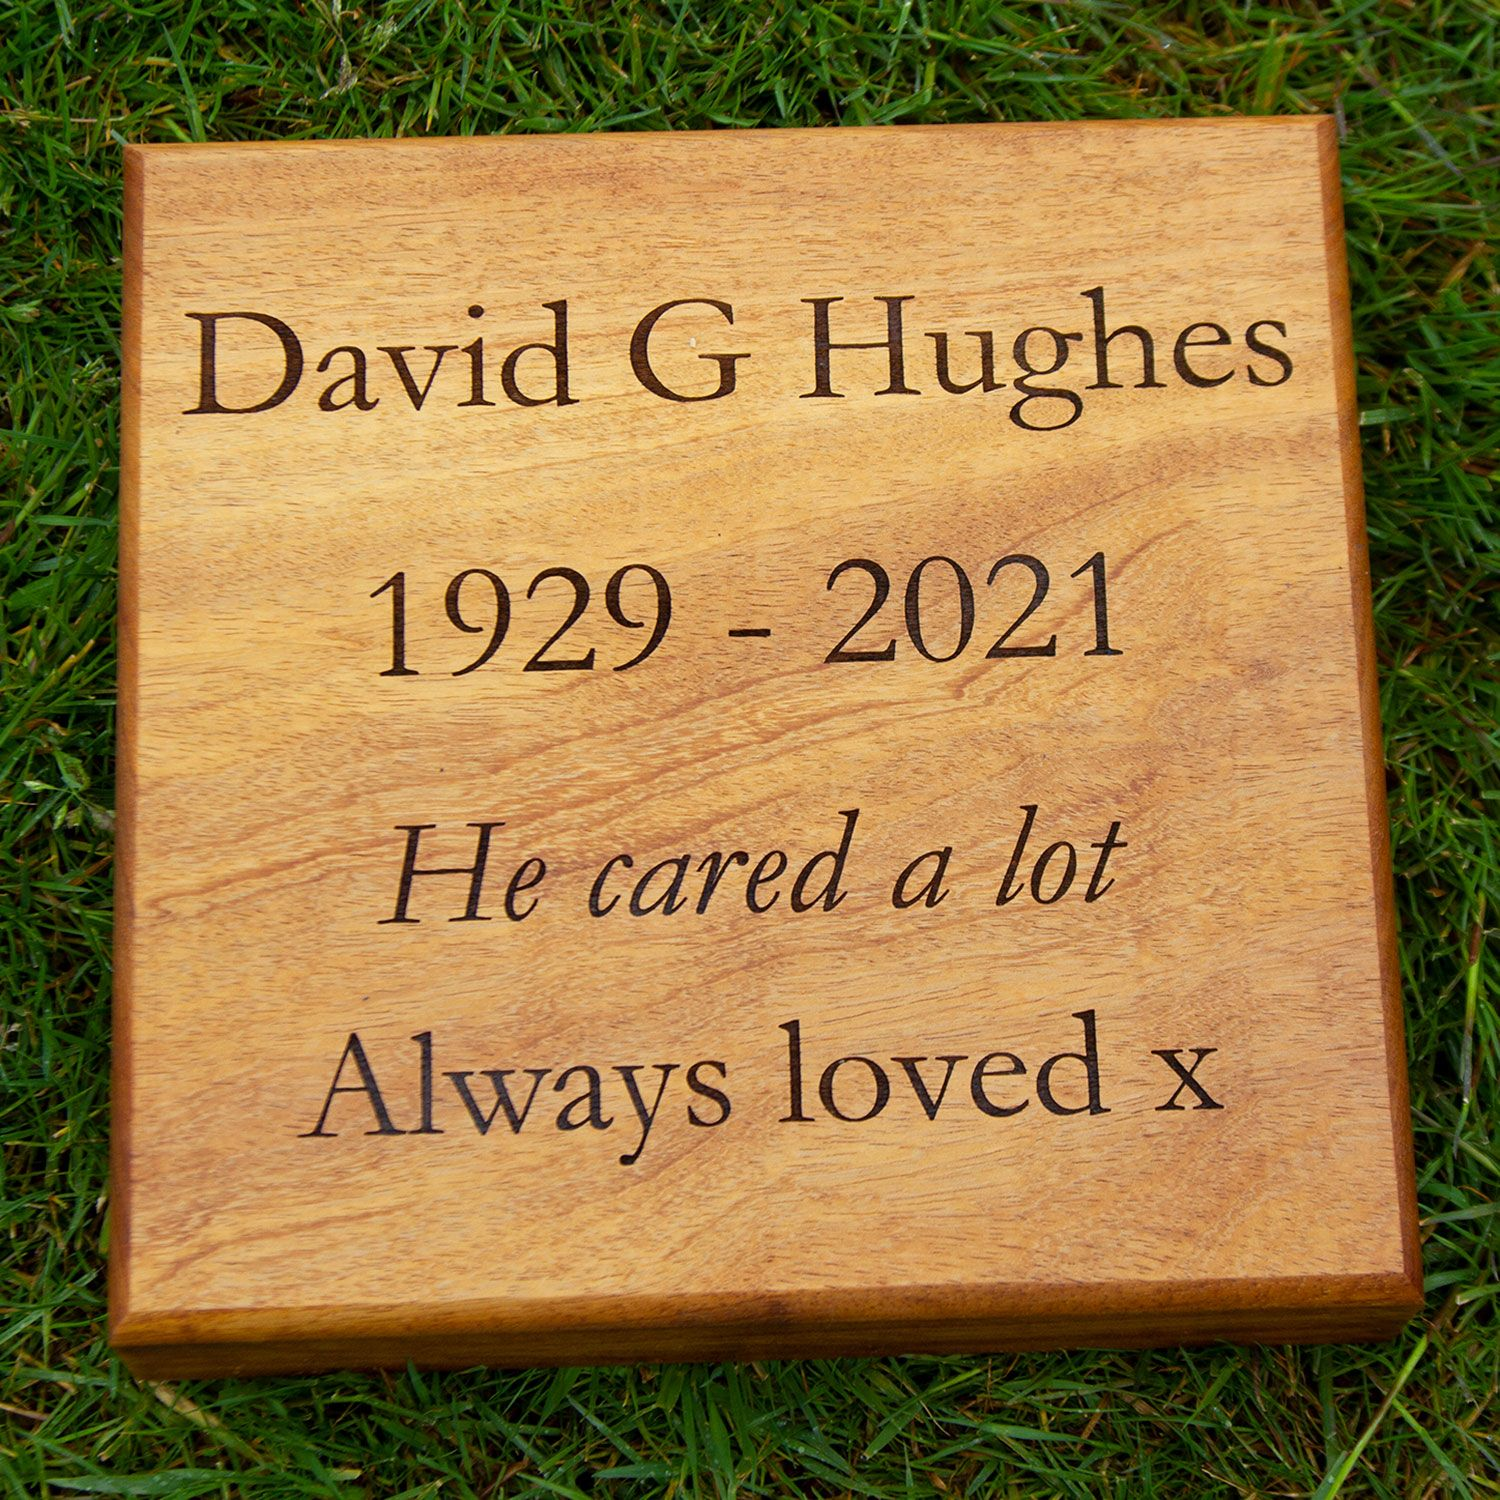 Wooden Tablet / Wooden Lawn Memorial